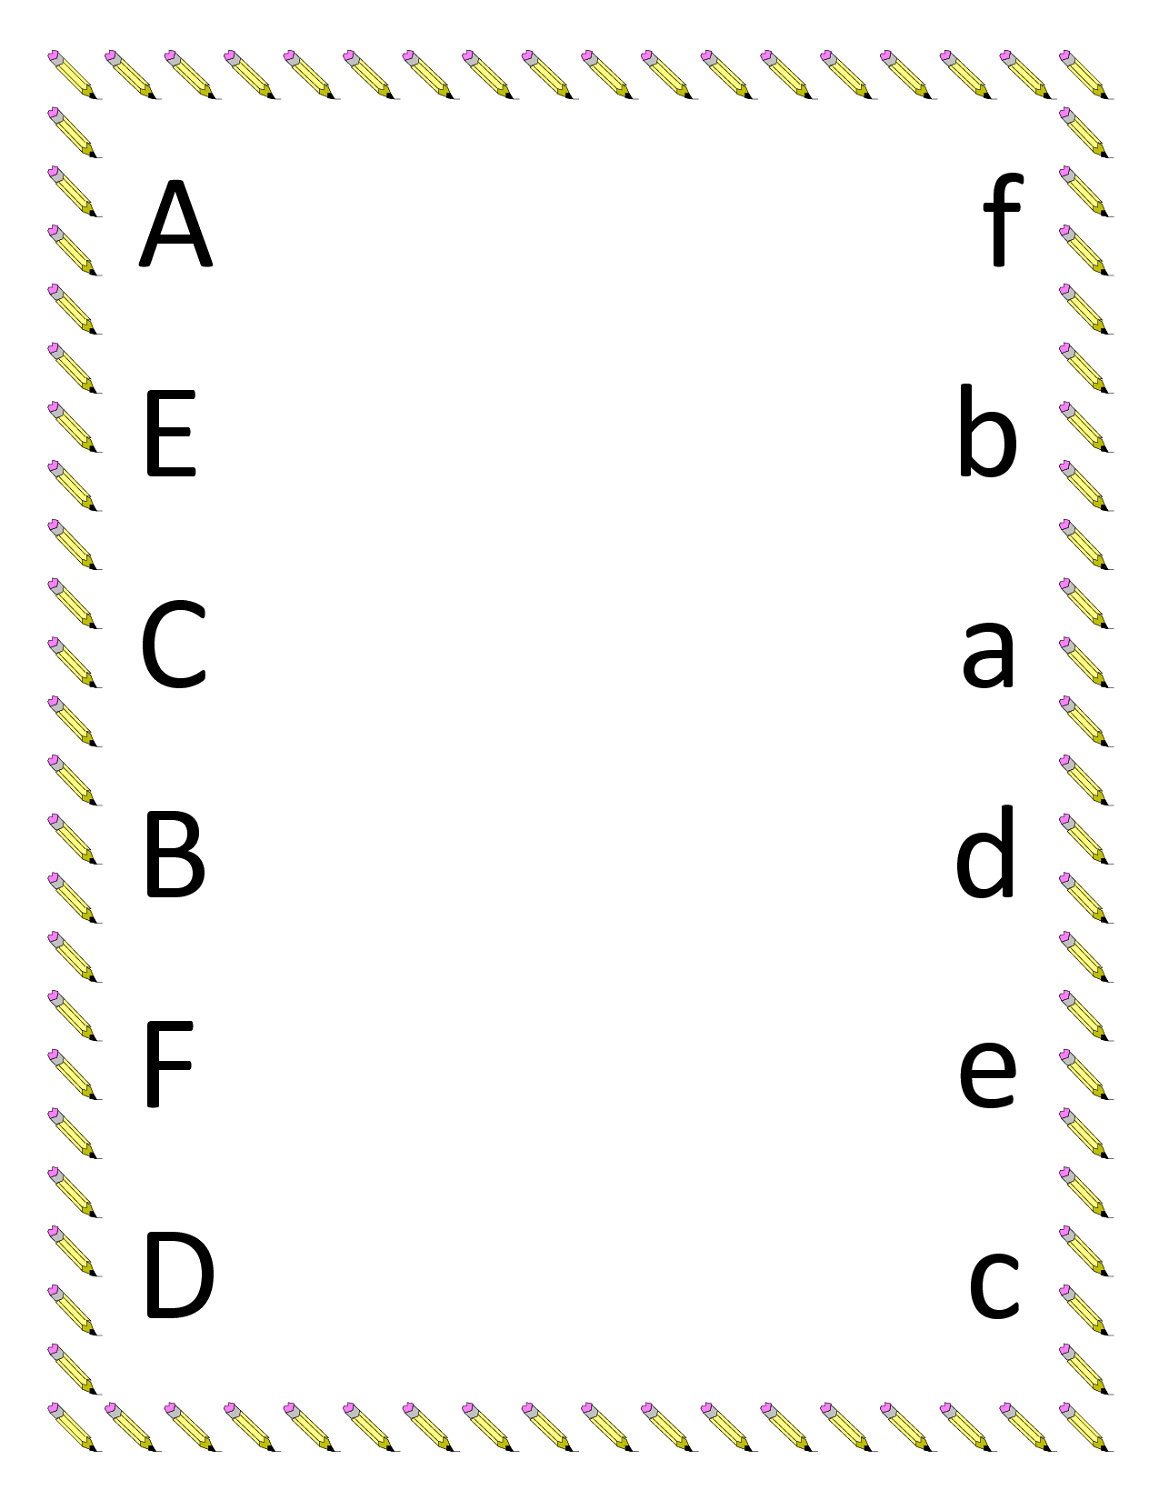 worksheet for nursery alphabet